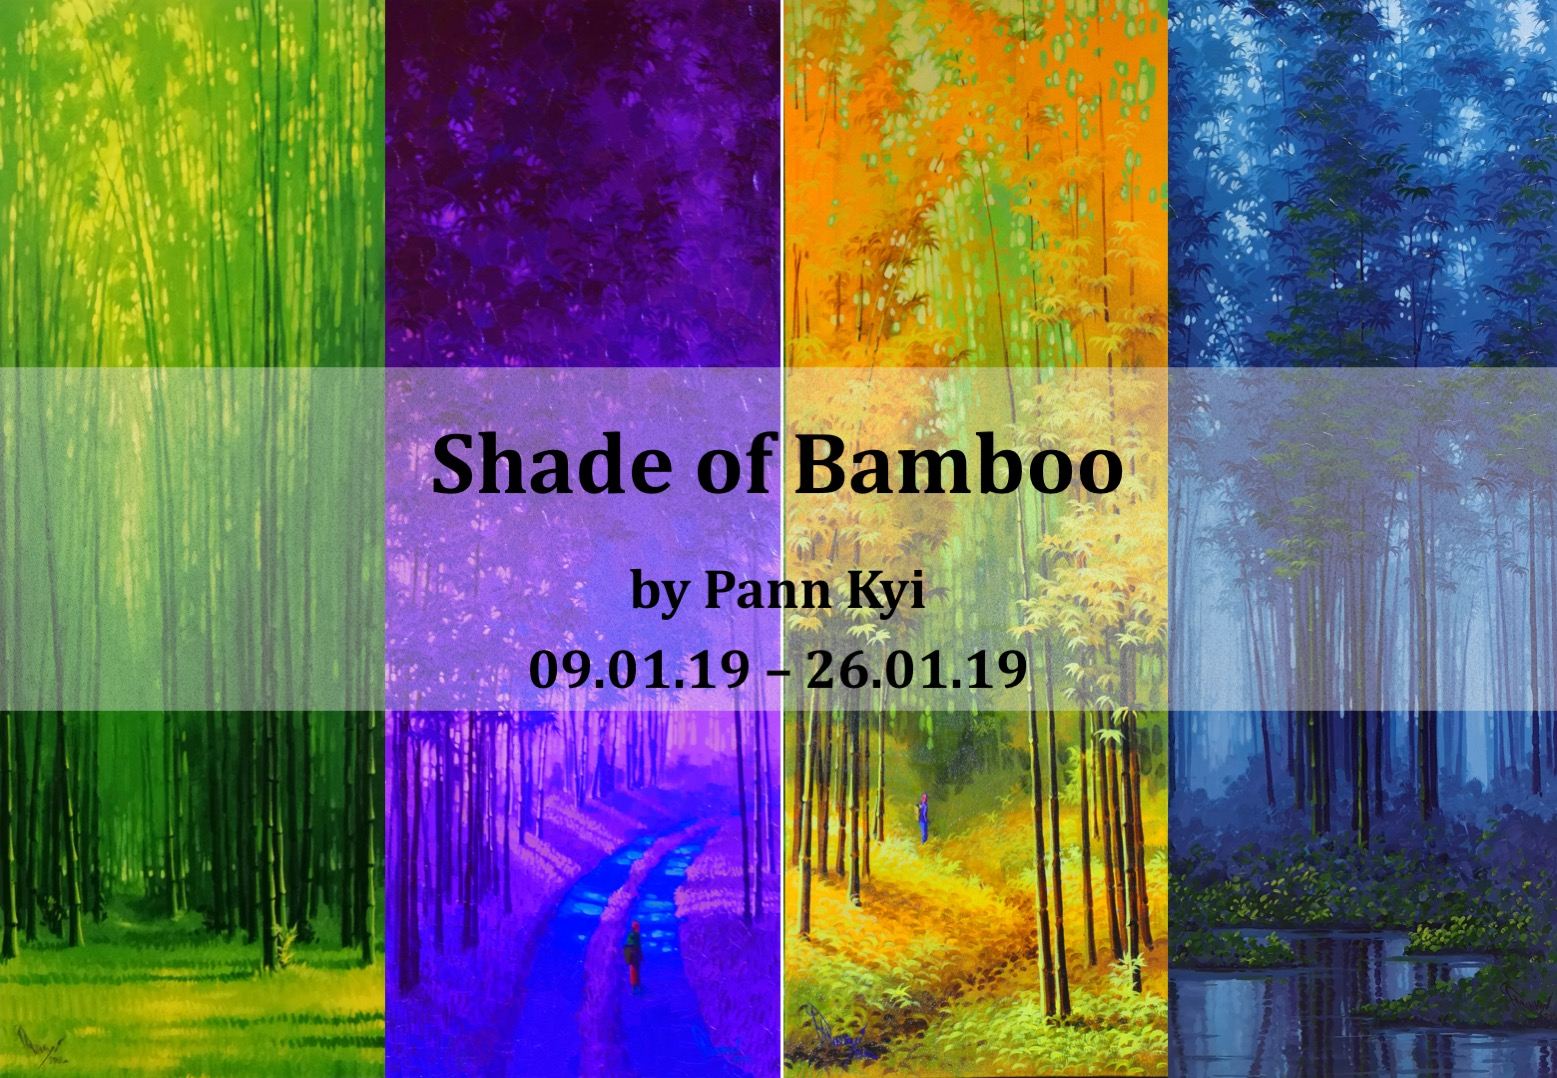 Shade of Bamboo by Pann Kyi